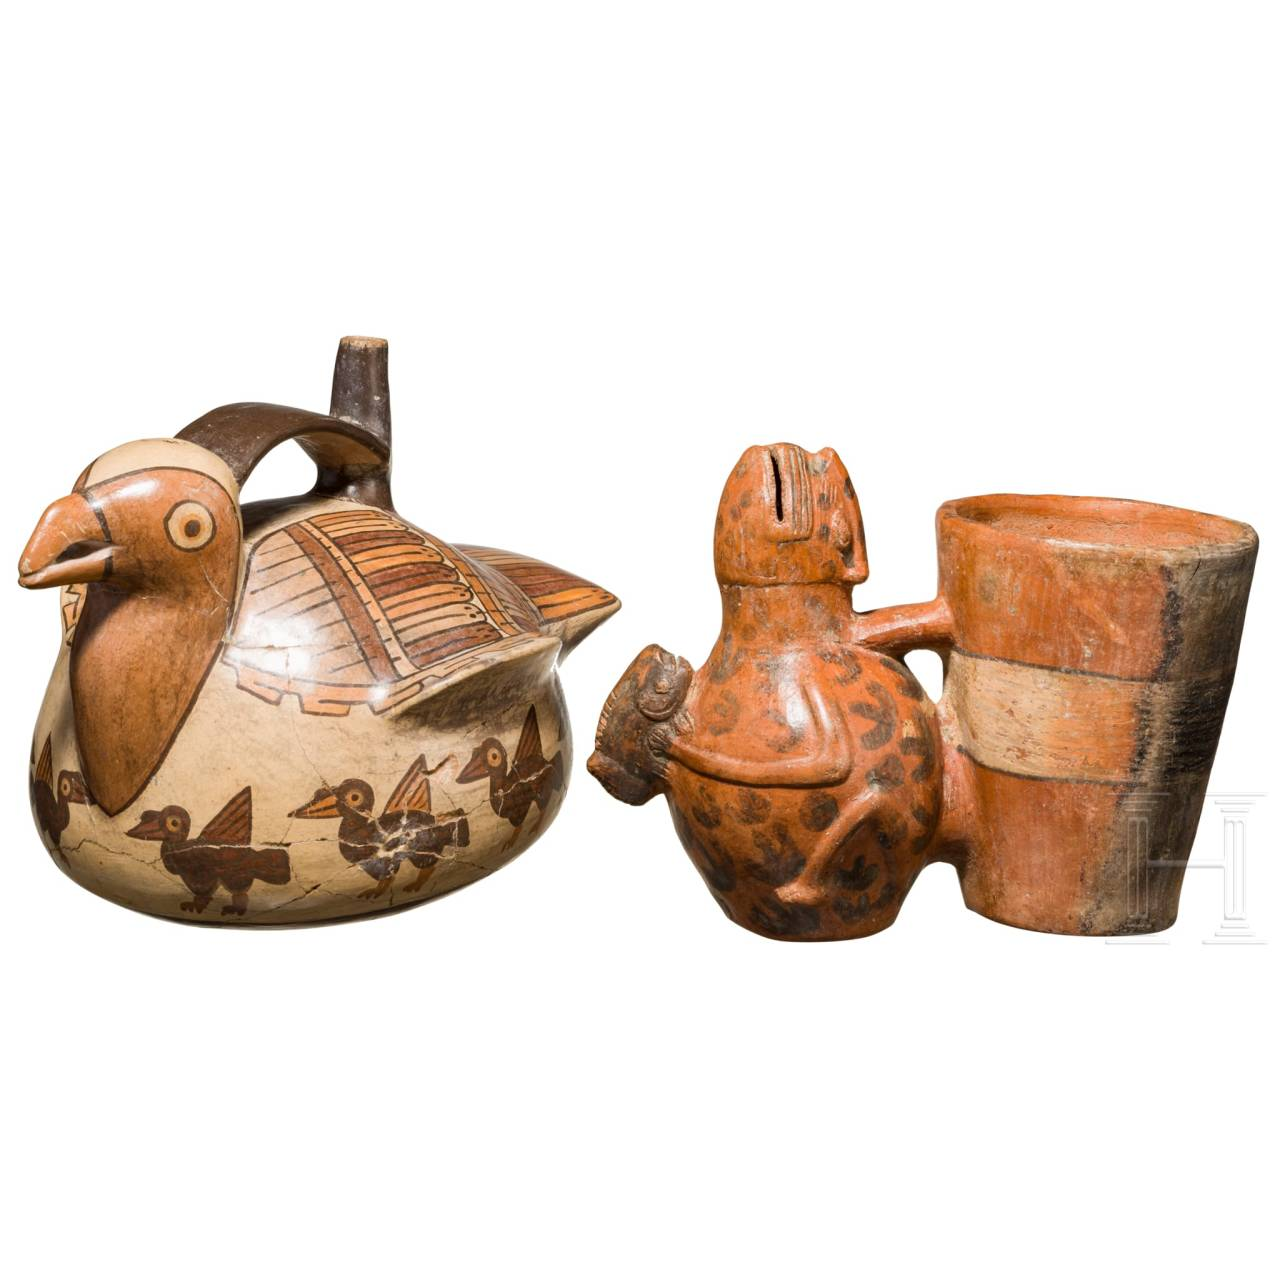 Two Peruvian ritual vessels, Nazca and Huari, 1st - 8th and 8th - 12th century A.D.